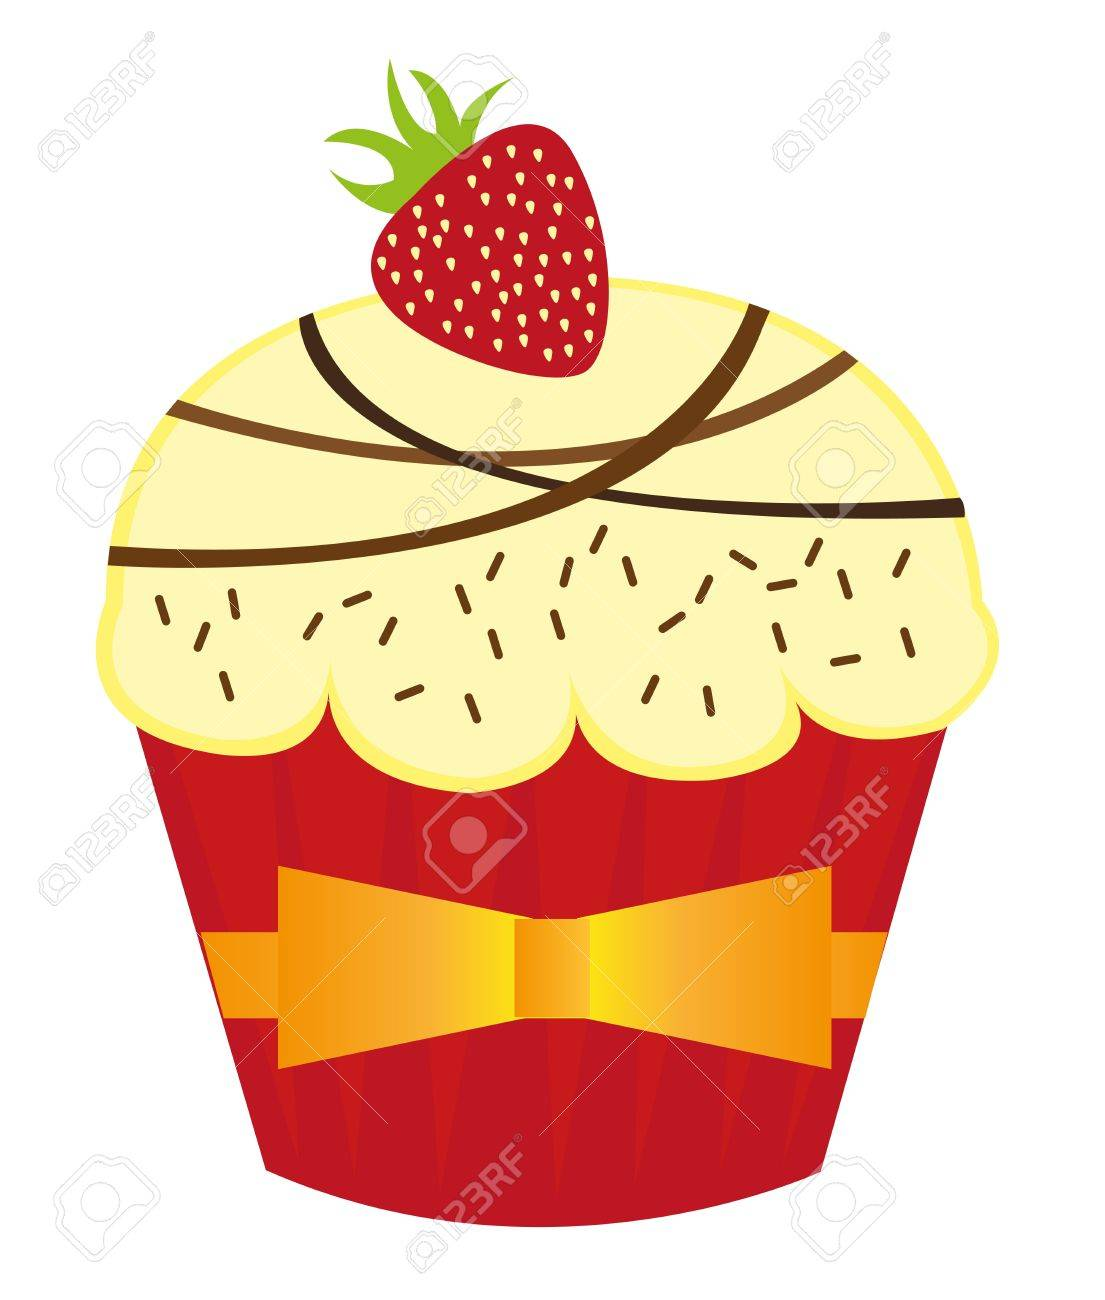 hight resolution of stockfoto vanilla cup cakes with strawberry over white background vector